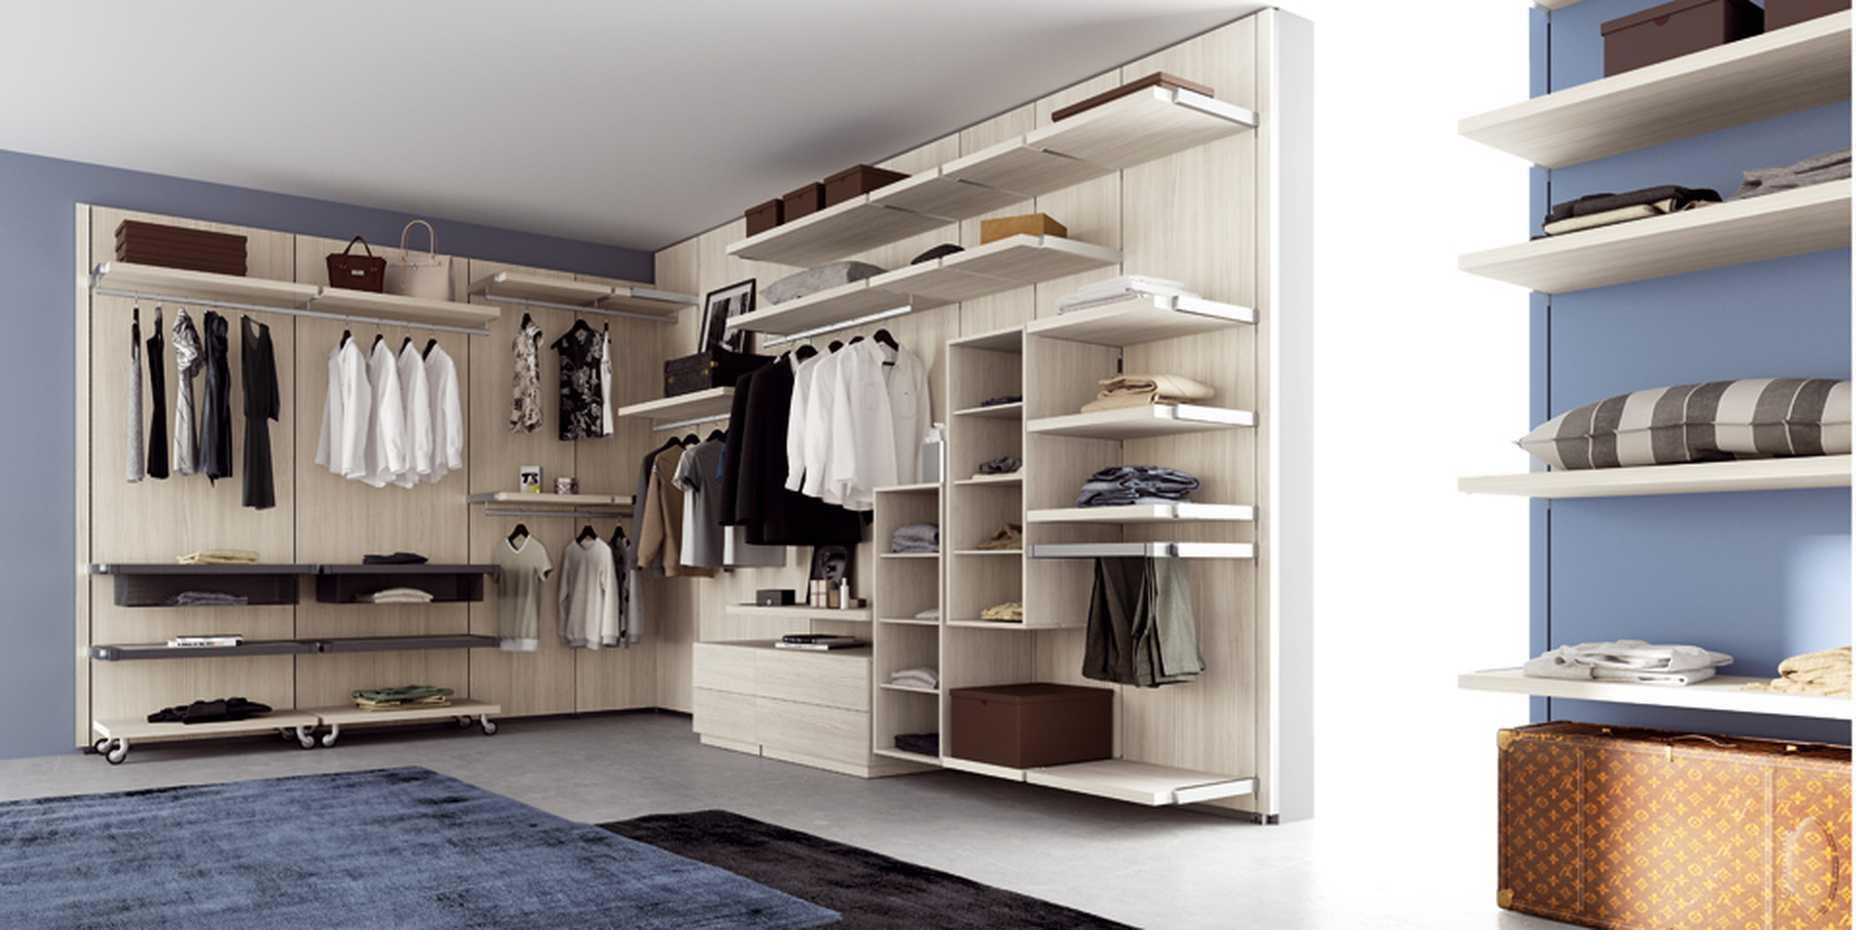 Rack Walk-in Wardrobe by Mercantini product image 7